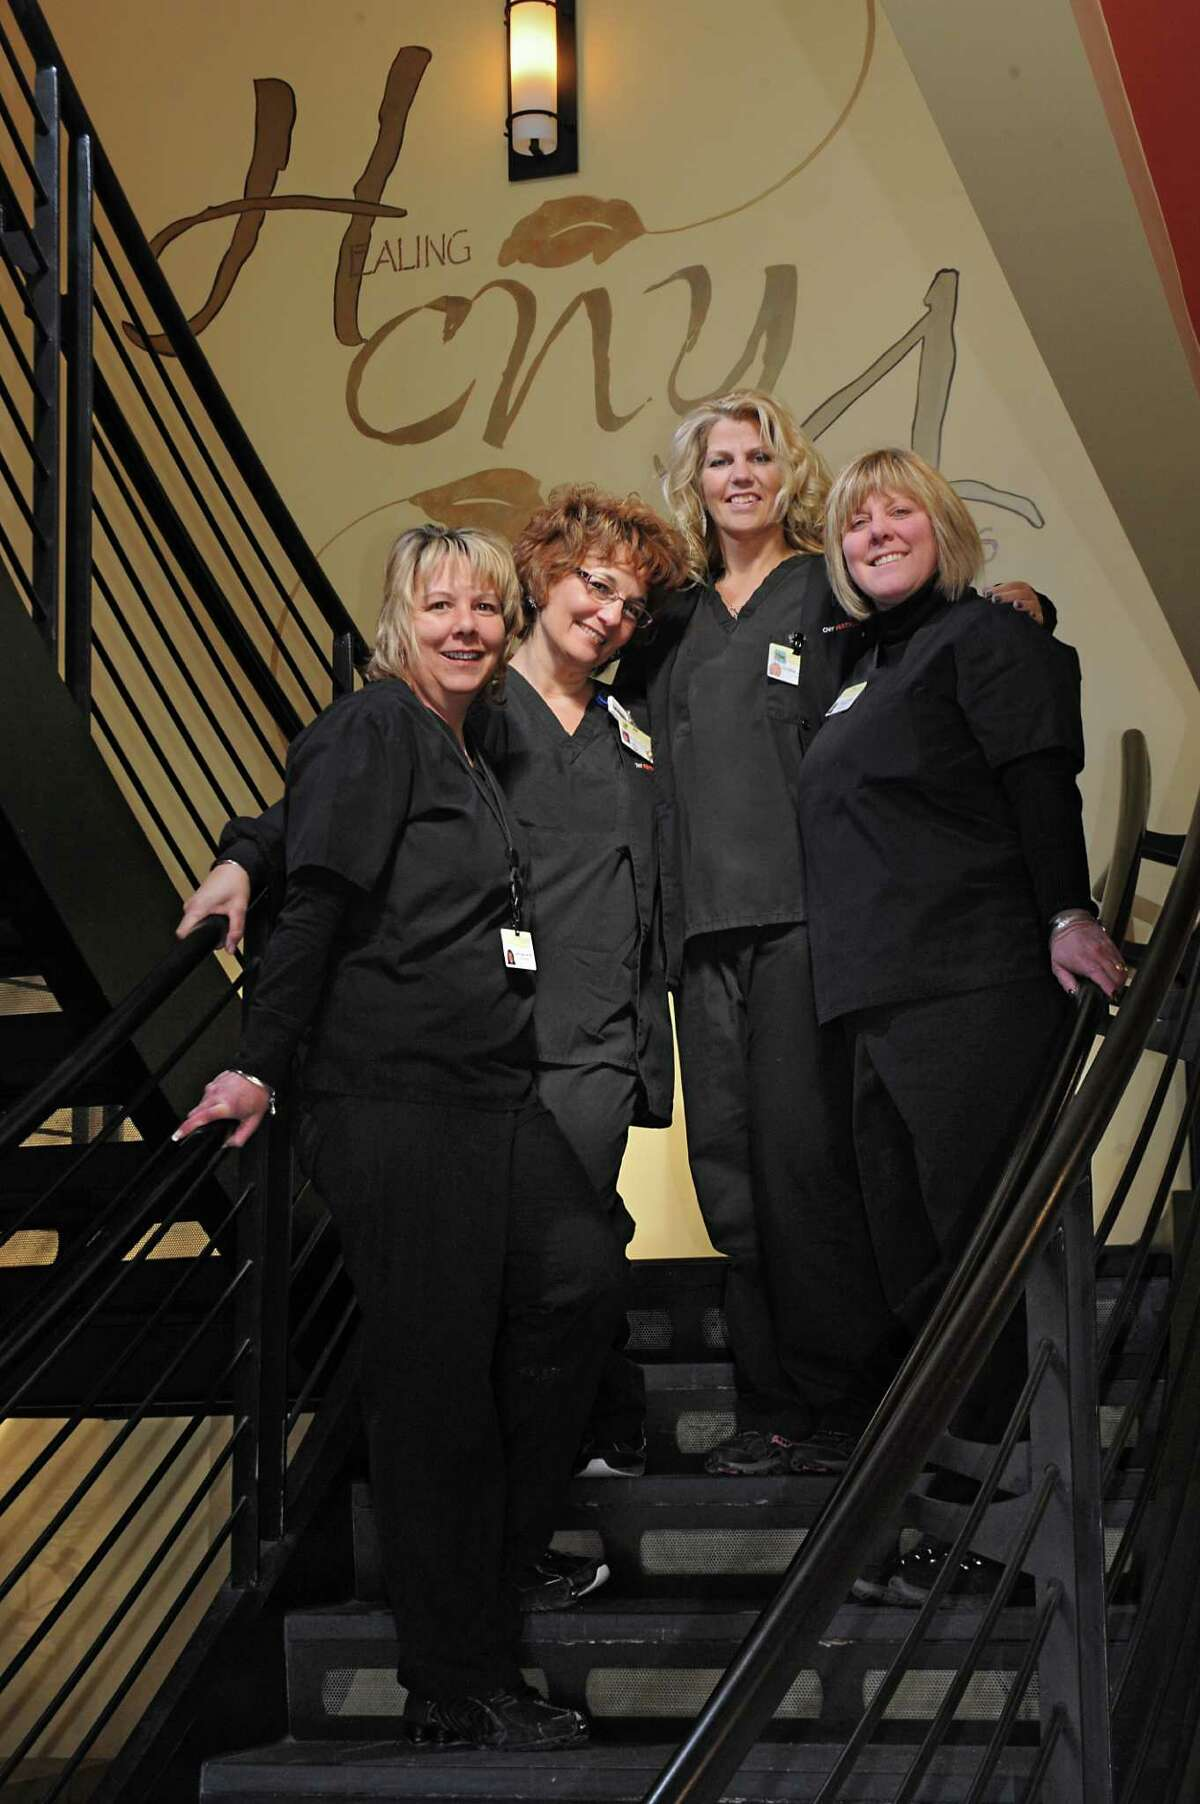 Nurses Justine Taylor, Stacey Dicerbo, Greta Joost and ultrasonographer Sheila Miller stand on the stairs at CNY Fertility on Friday, Feb. 20, 2015 in Latham, N.Y. (Lori Van Buren / Times Union)